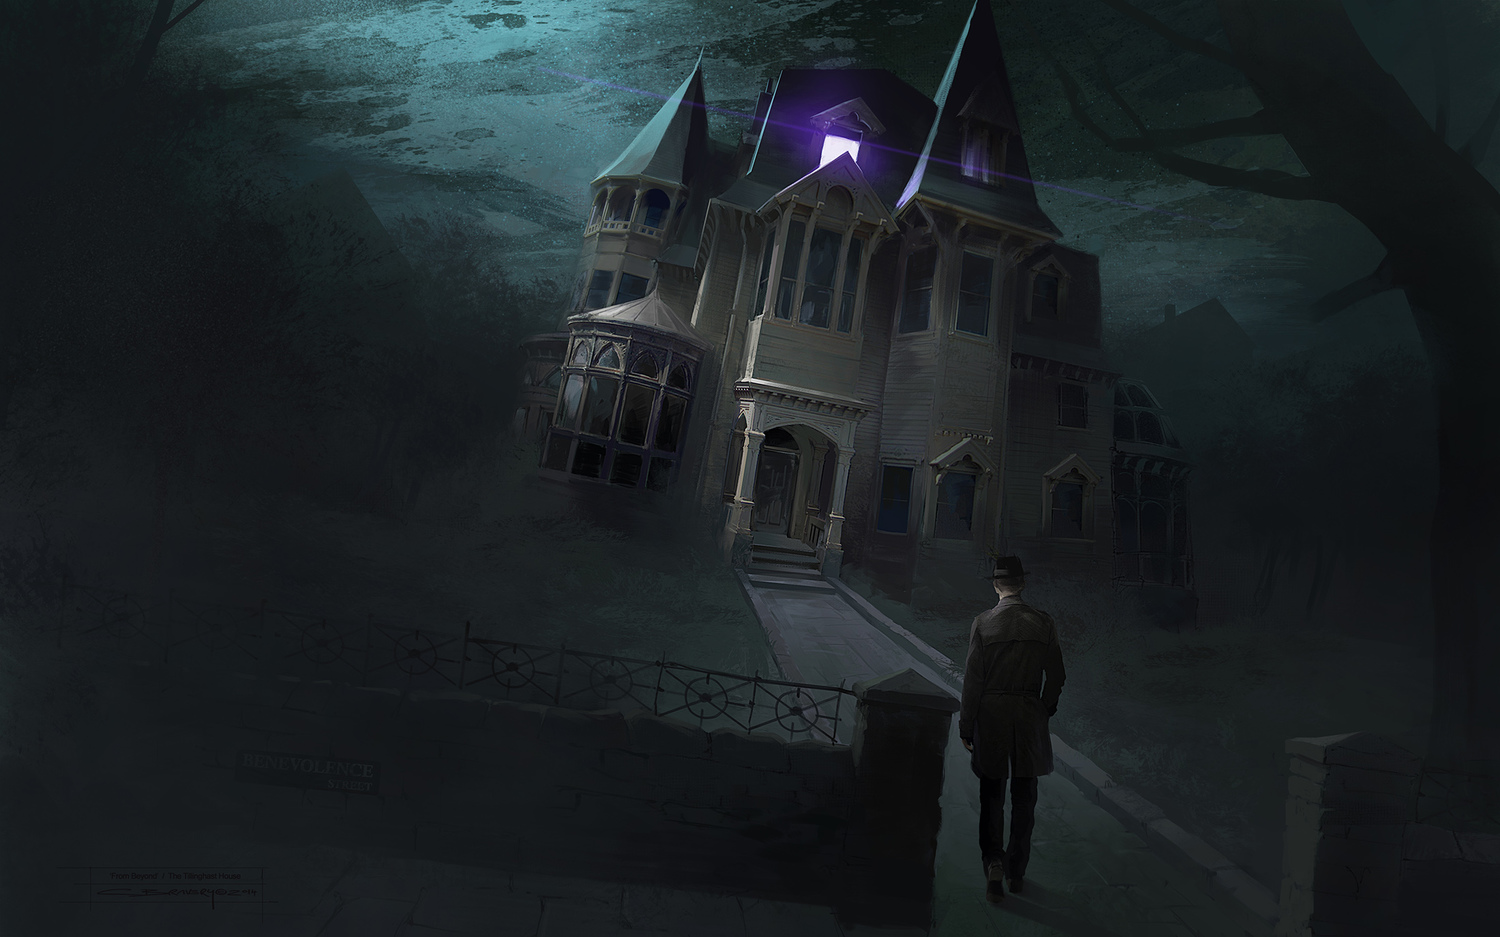 From Beyond concept art